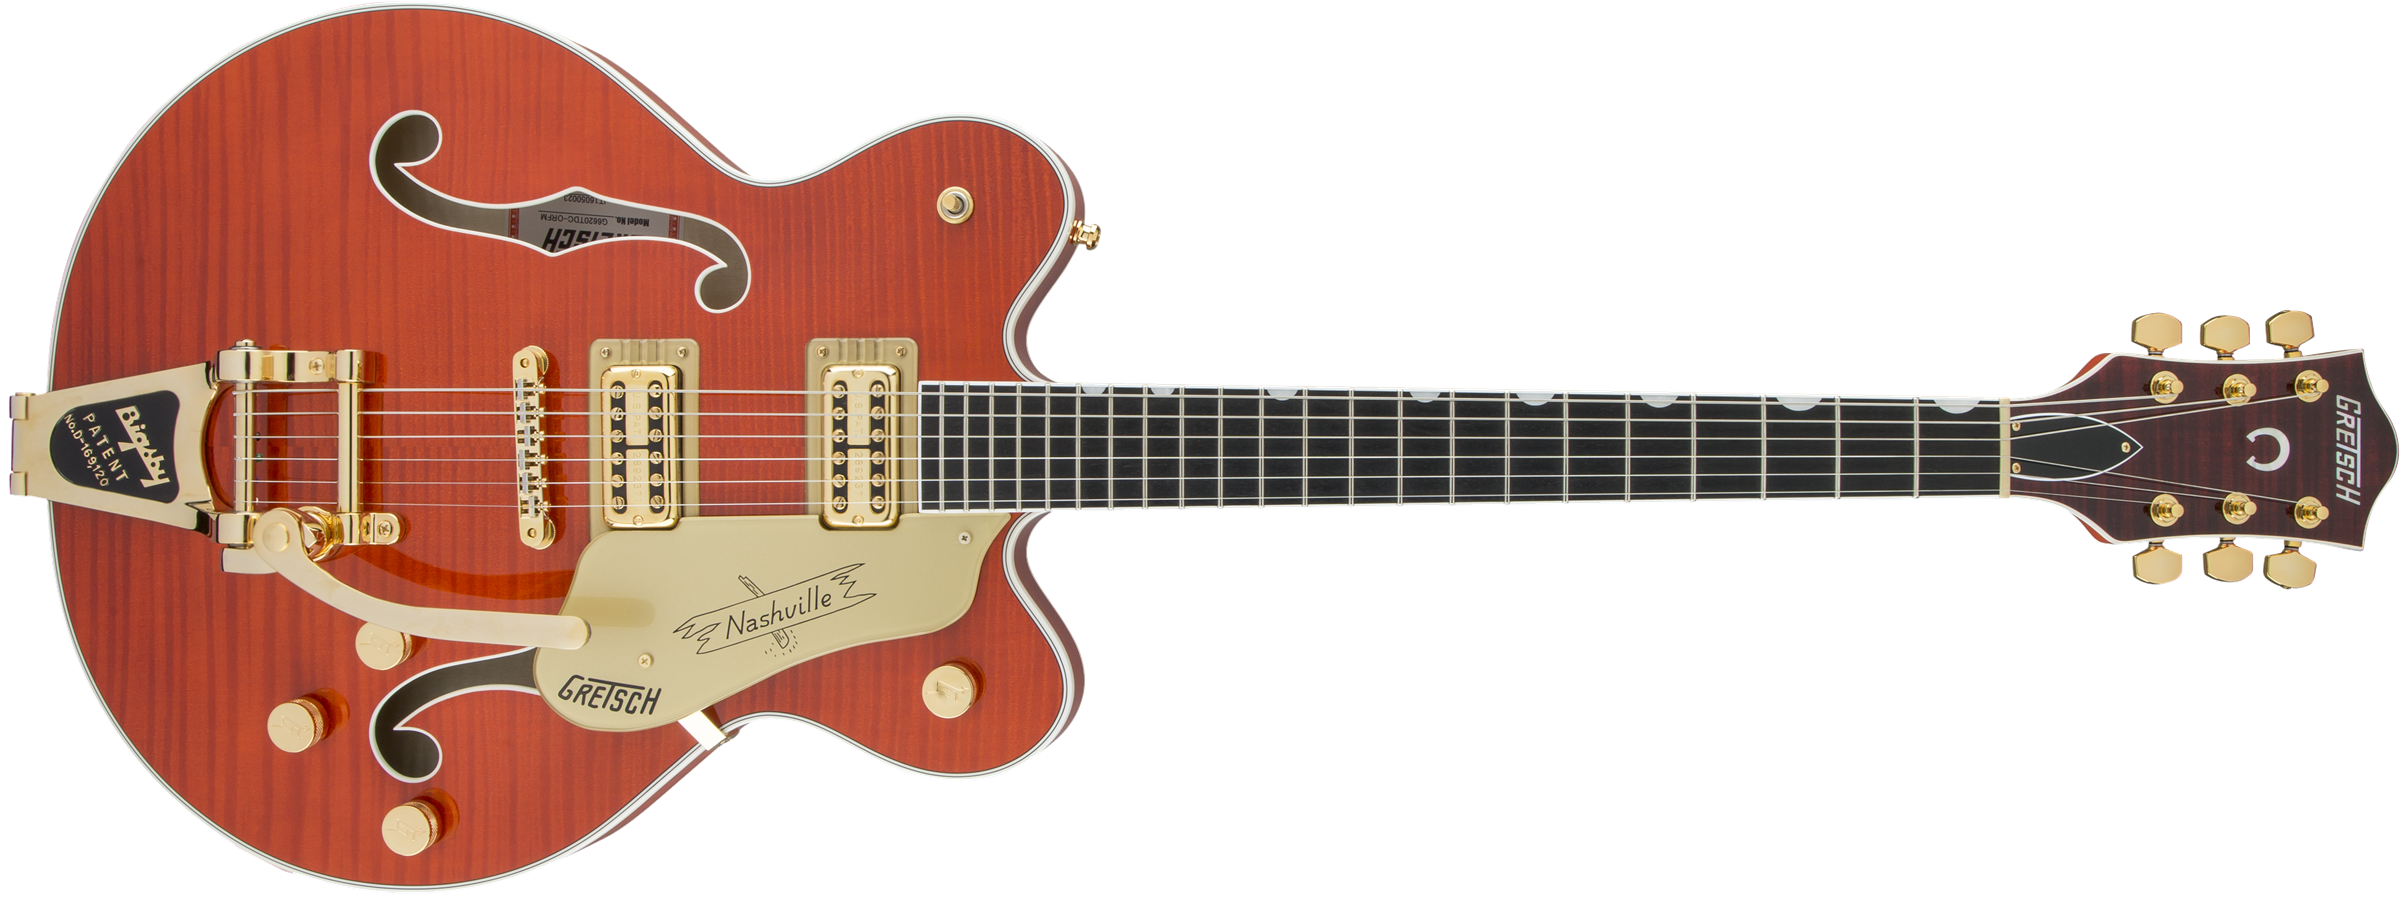 GRETSCH-G6620TFM-Players-Edition-Nashville-Center-Block-Double-Cut-with-String-Thru-Bigsby-and-Flame-Maple-FilterTron-Pickups-Orange-Stain-sku-571000148